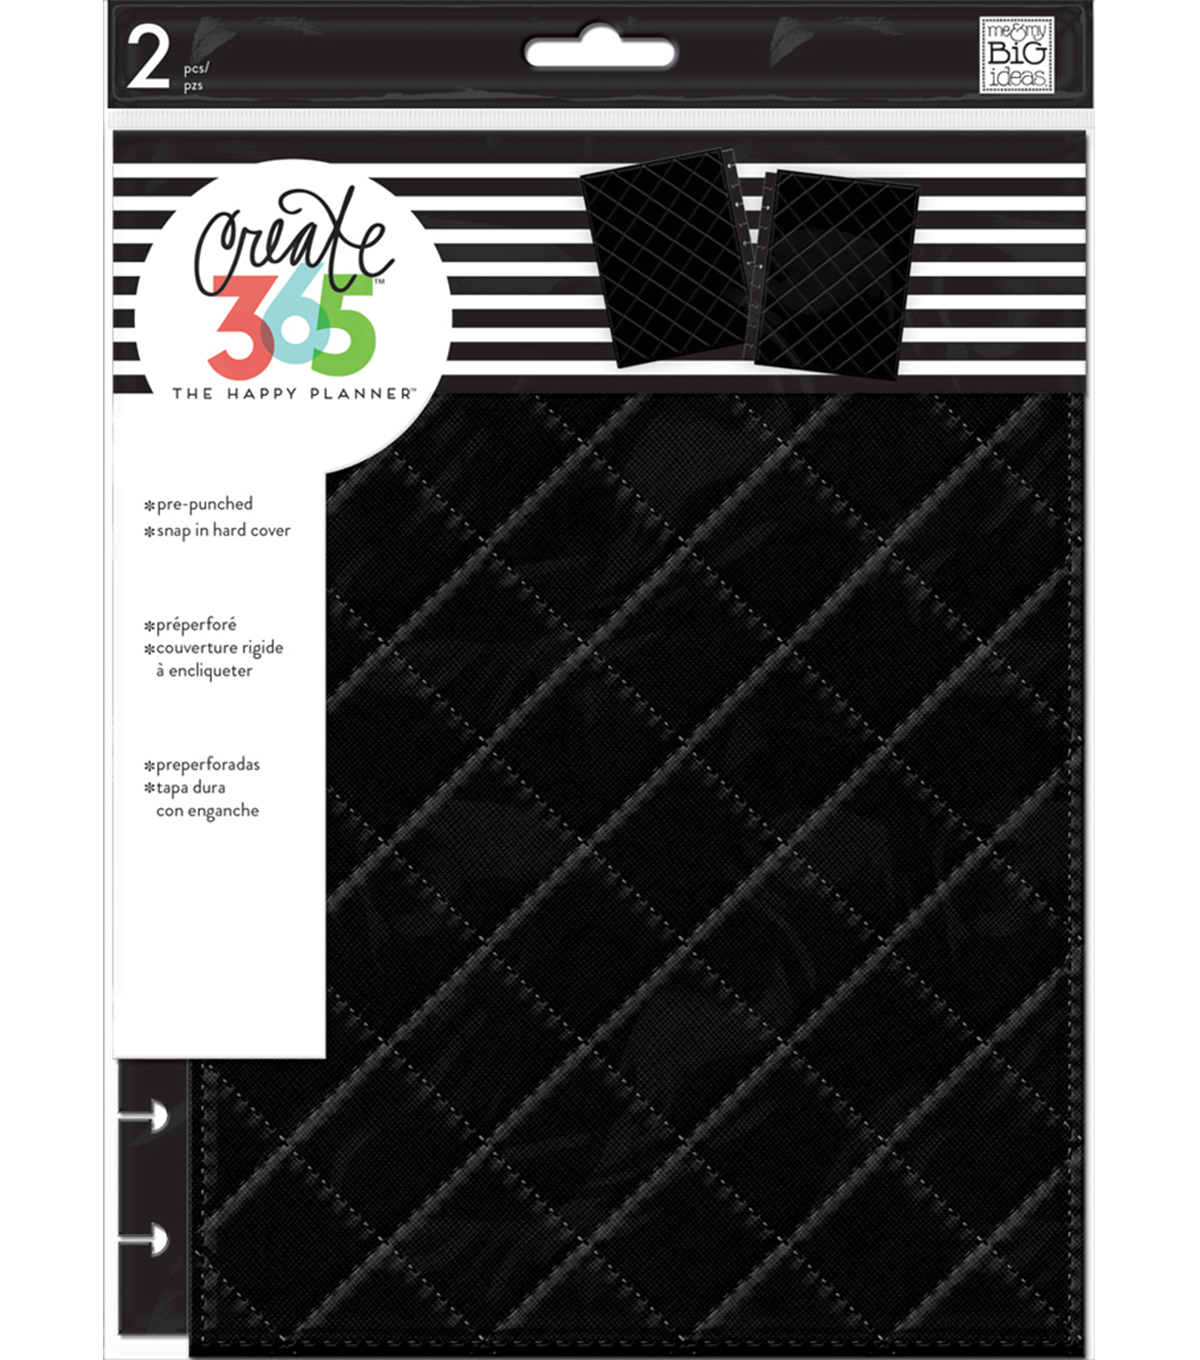 The Happy Planner Classic Snap-In Hard Cover Planner-Black